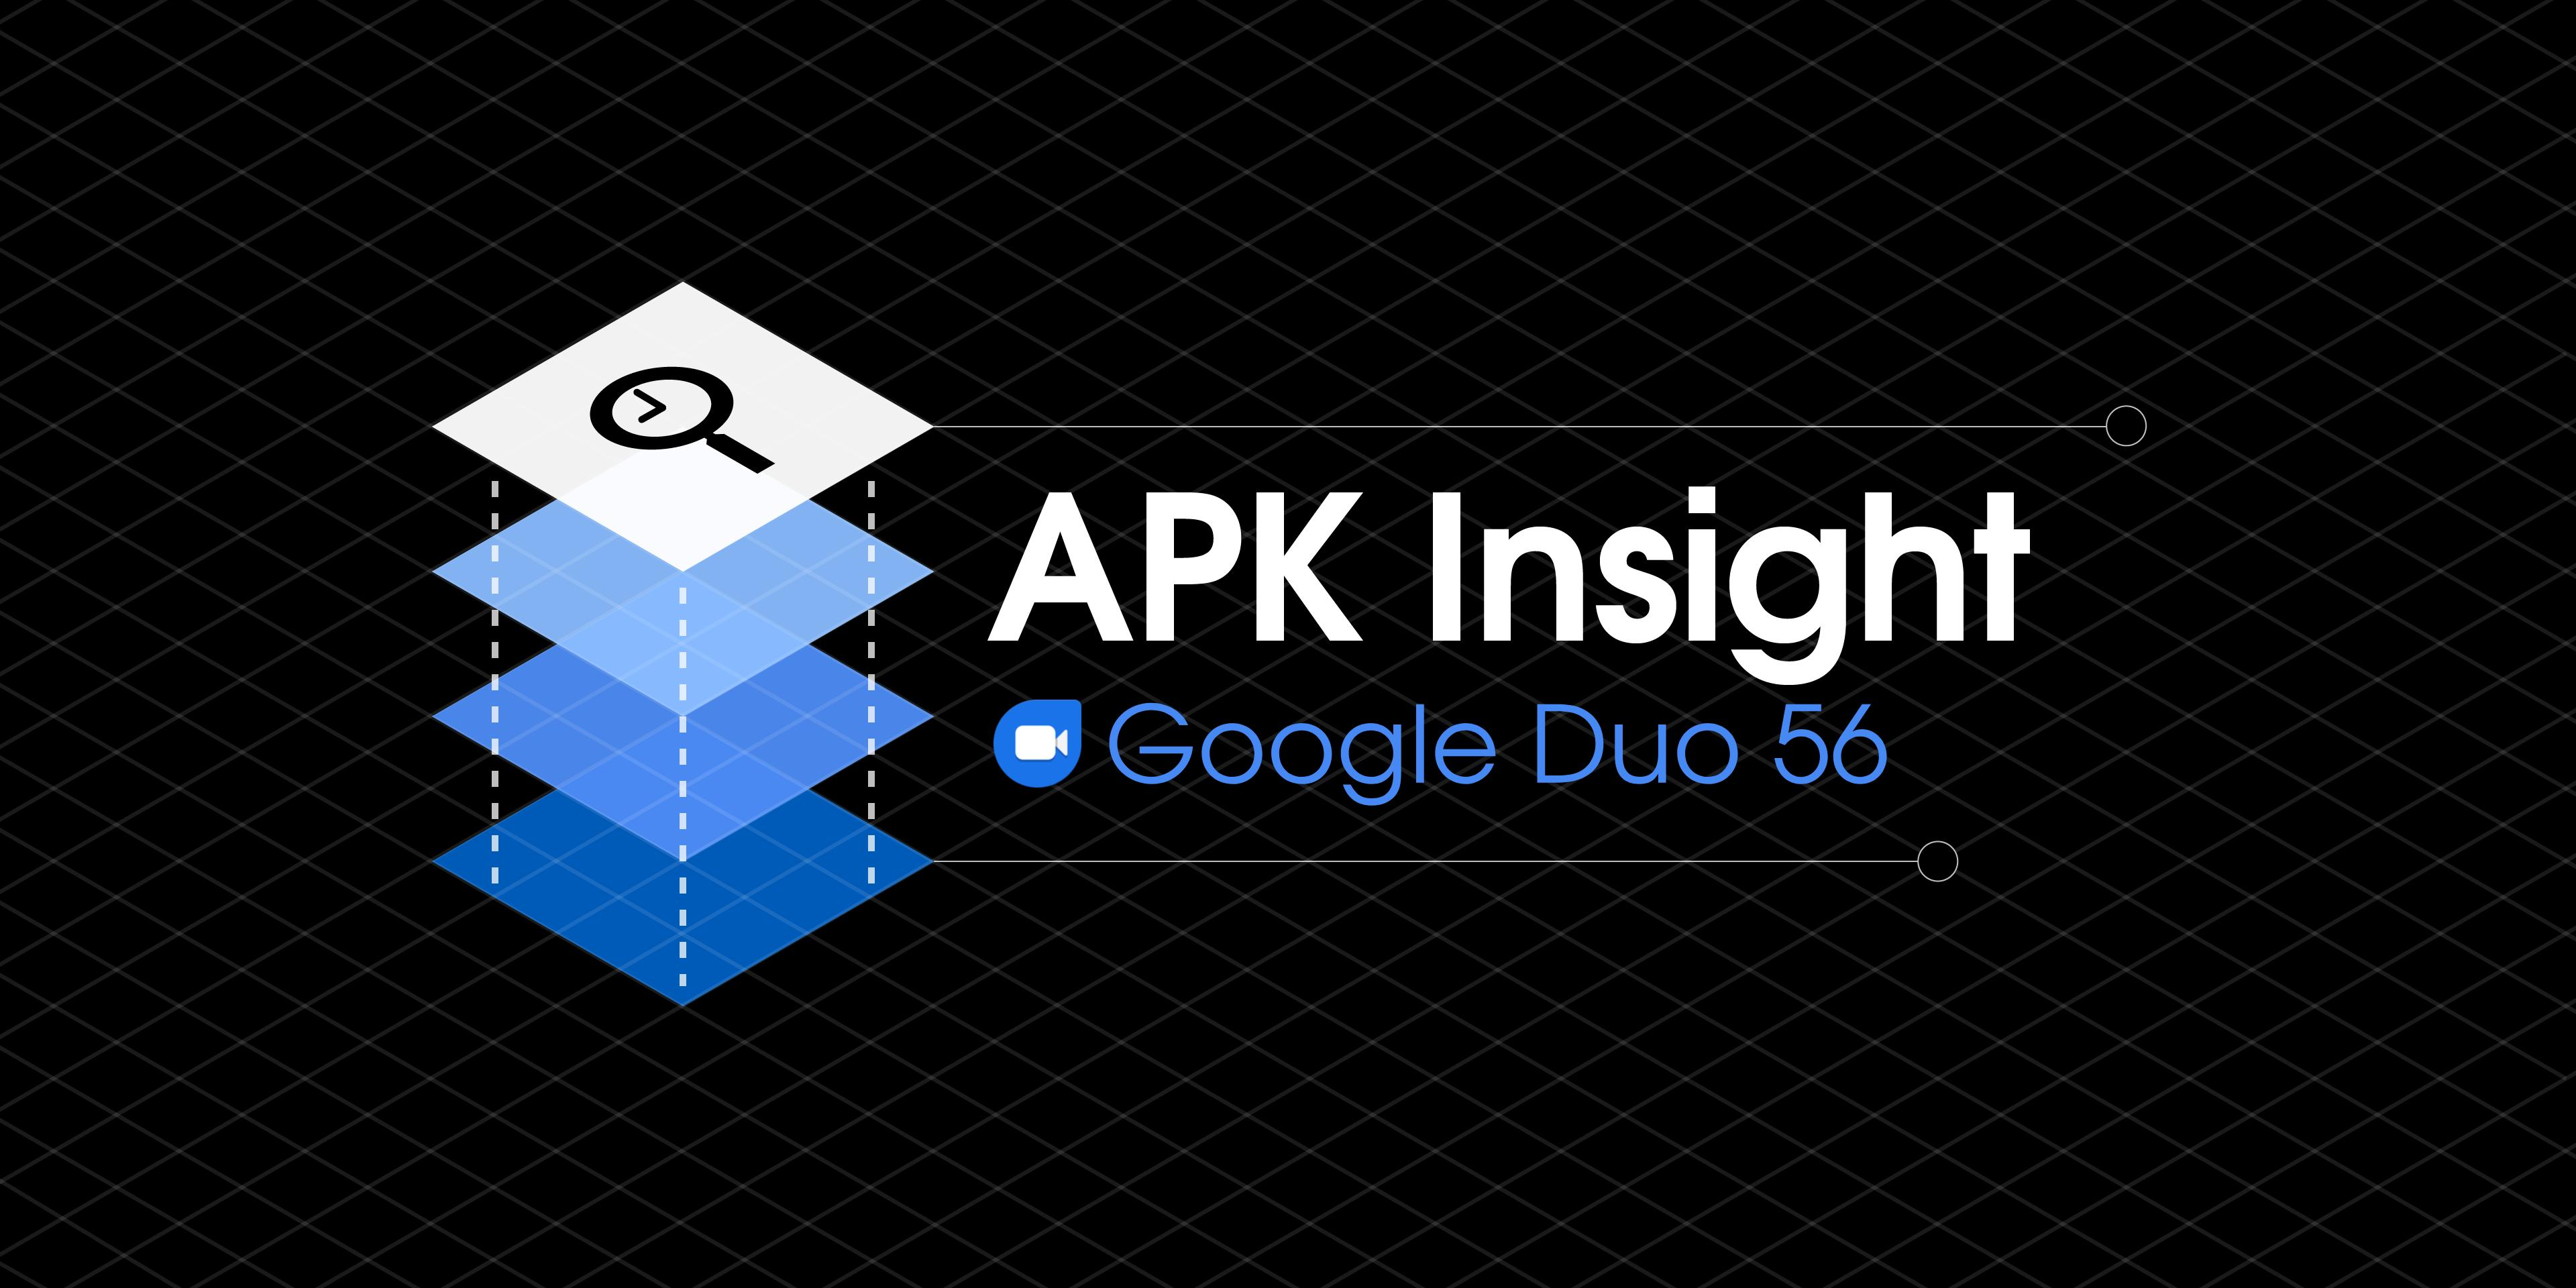 Google Duo 56 preps in-app call history, Low Light mode, sending a 'Ping' [APK Insight]